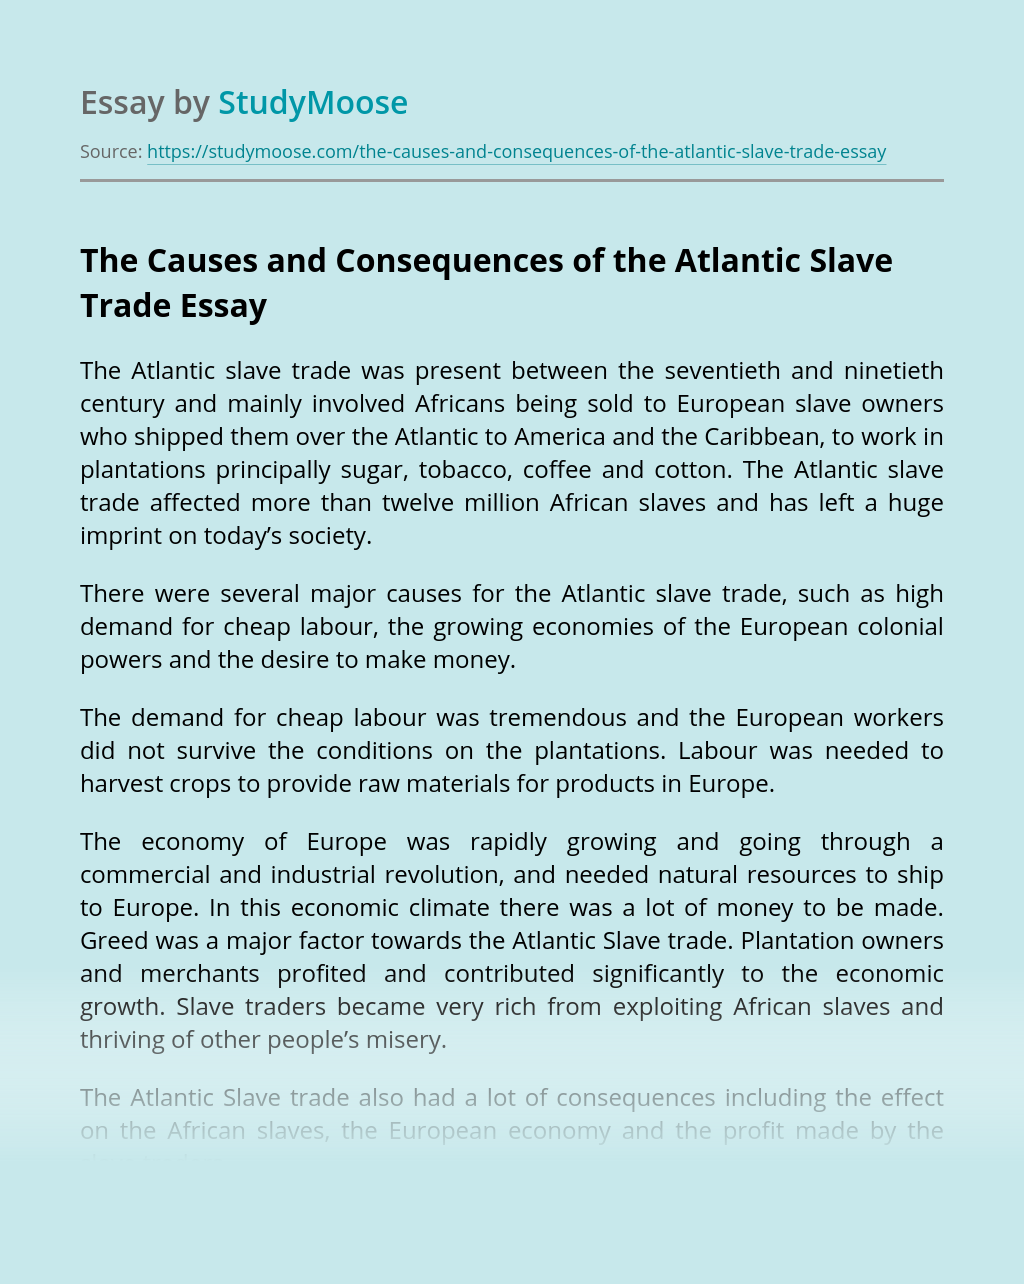 The Causes and Consequences of the Atlantic Slave Trade